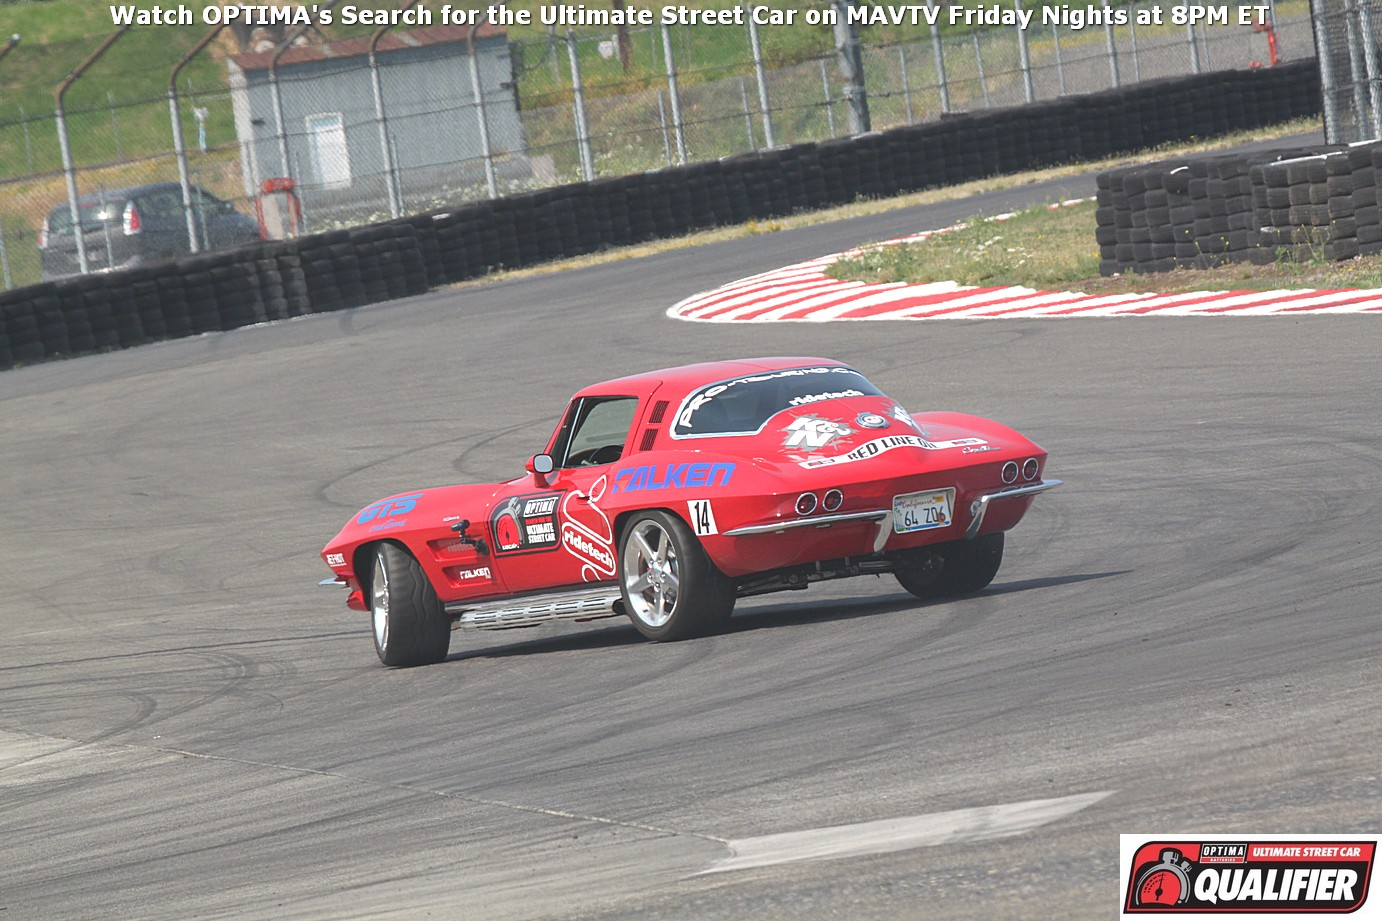 2014 OUSCI Preview- Jane Thurmond's 1964 Chevrolet Corvette